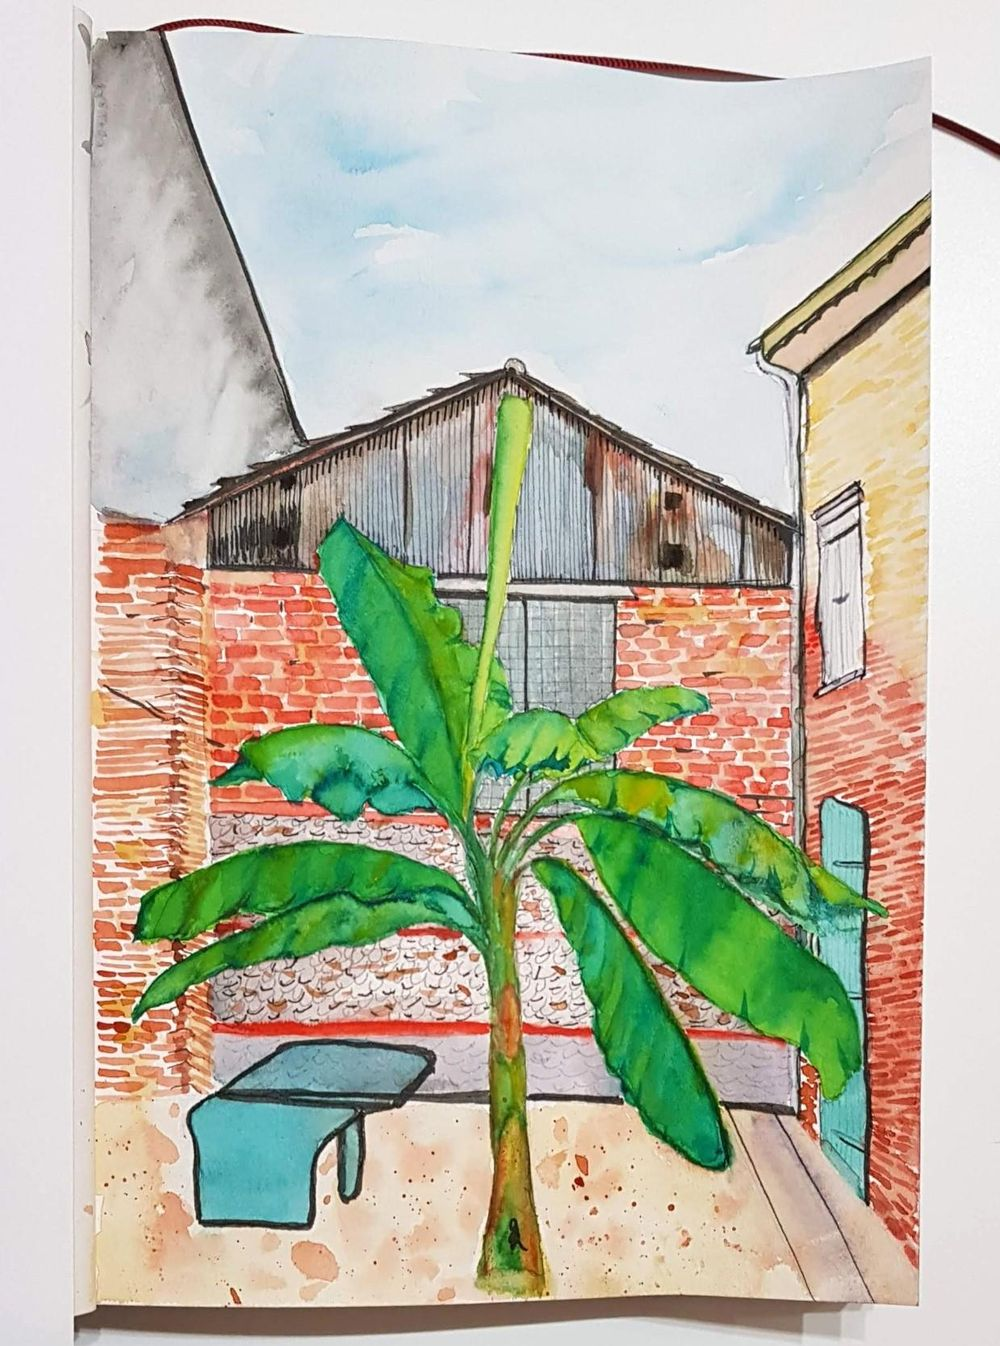 Courtyard in Toulouse - image 1 - student project